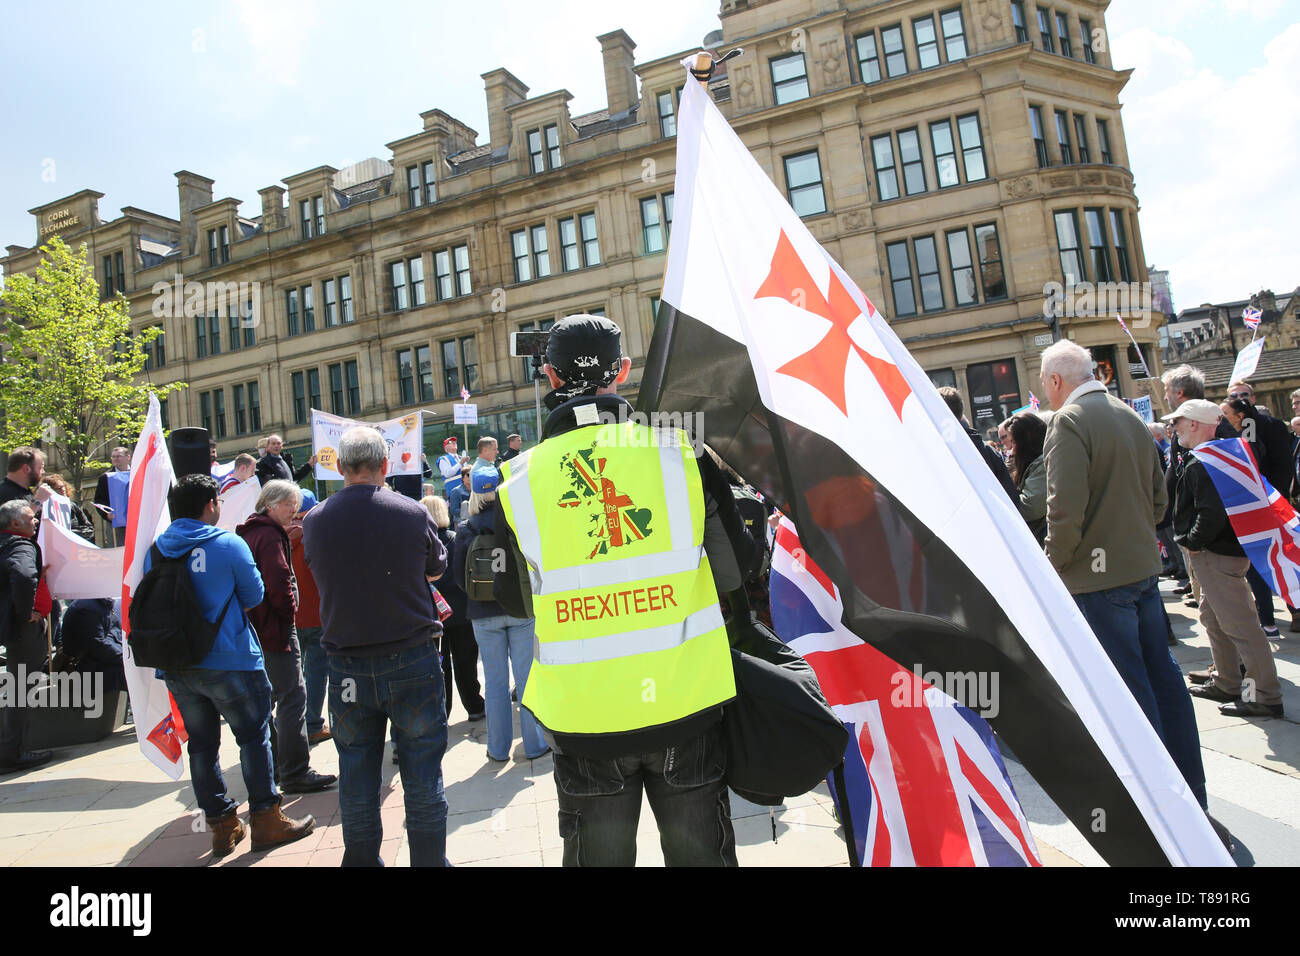 """Manchester, UK. 11th May 2019. Around 150 pro Brexit campaigners attending """"March for Democracy"""" with speakers and a rally in Cathedral Gardens,  Manchester, UK, 11th may, 2019 (C)Barbara Cook/Alamy Live News Credit: Barbara Cook/Alamy Live News Stock Photo"""